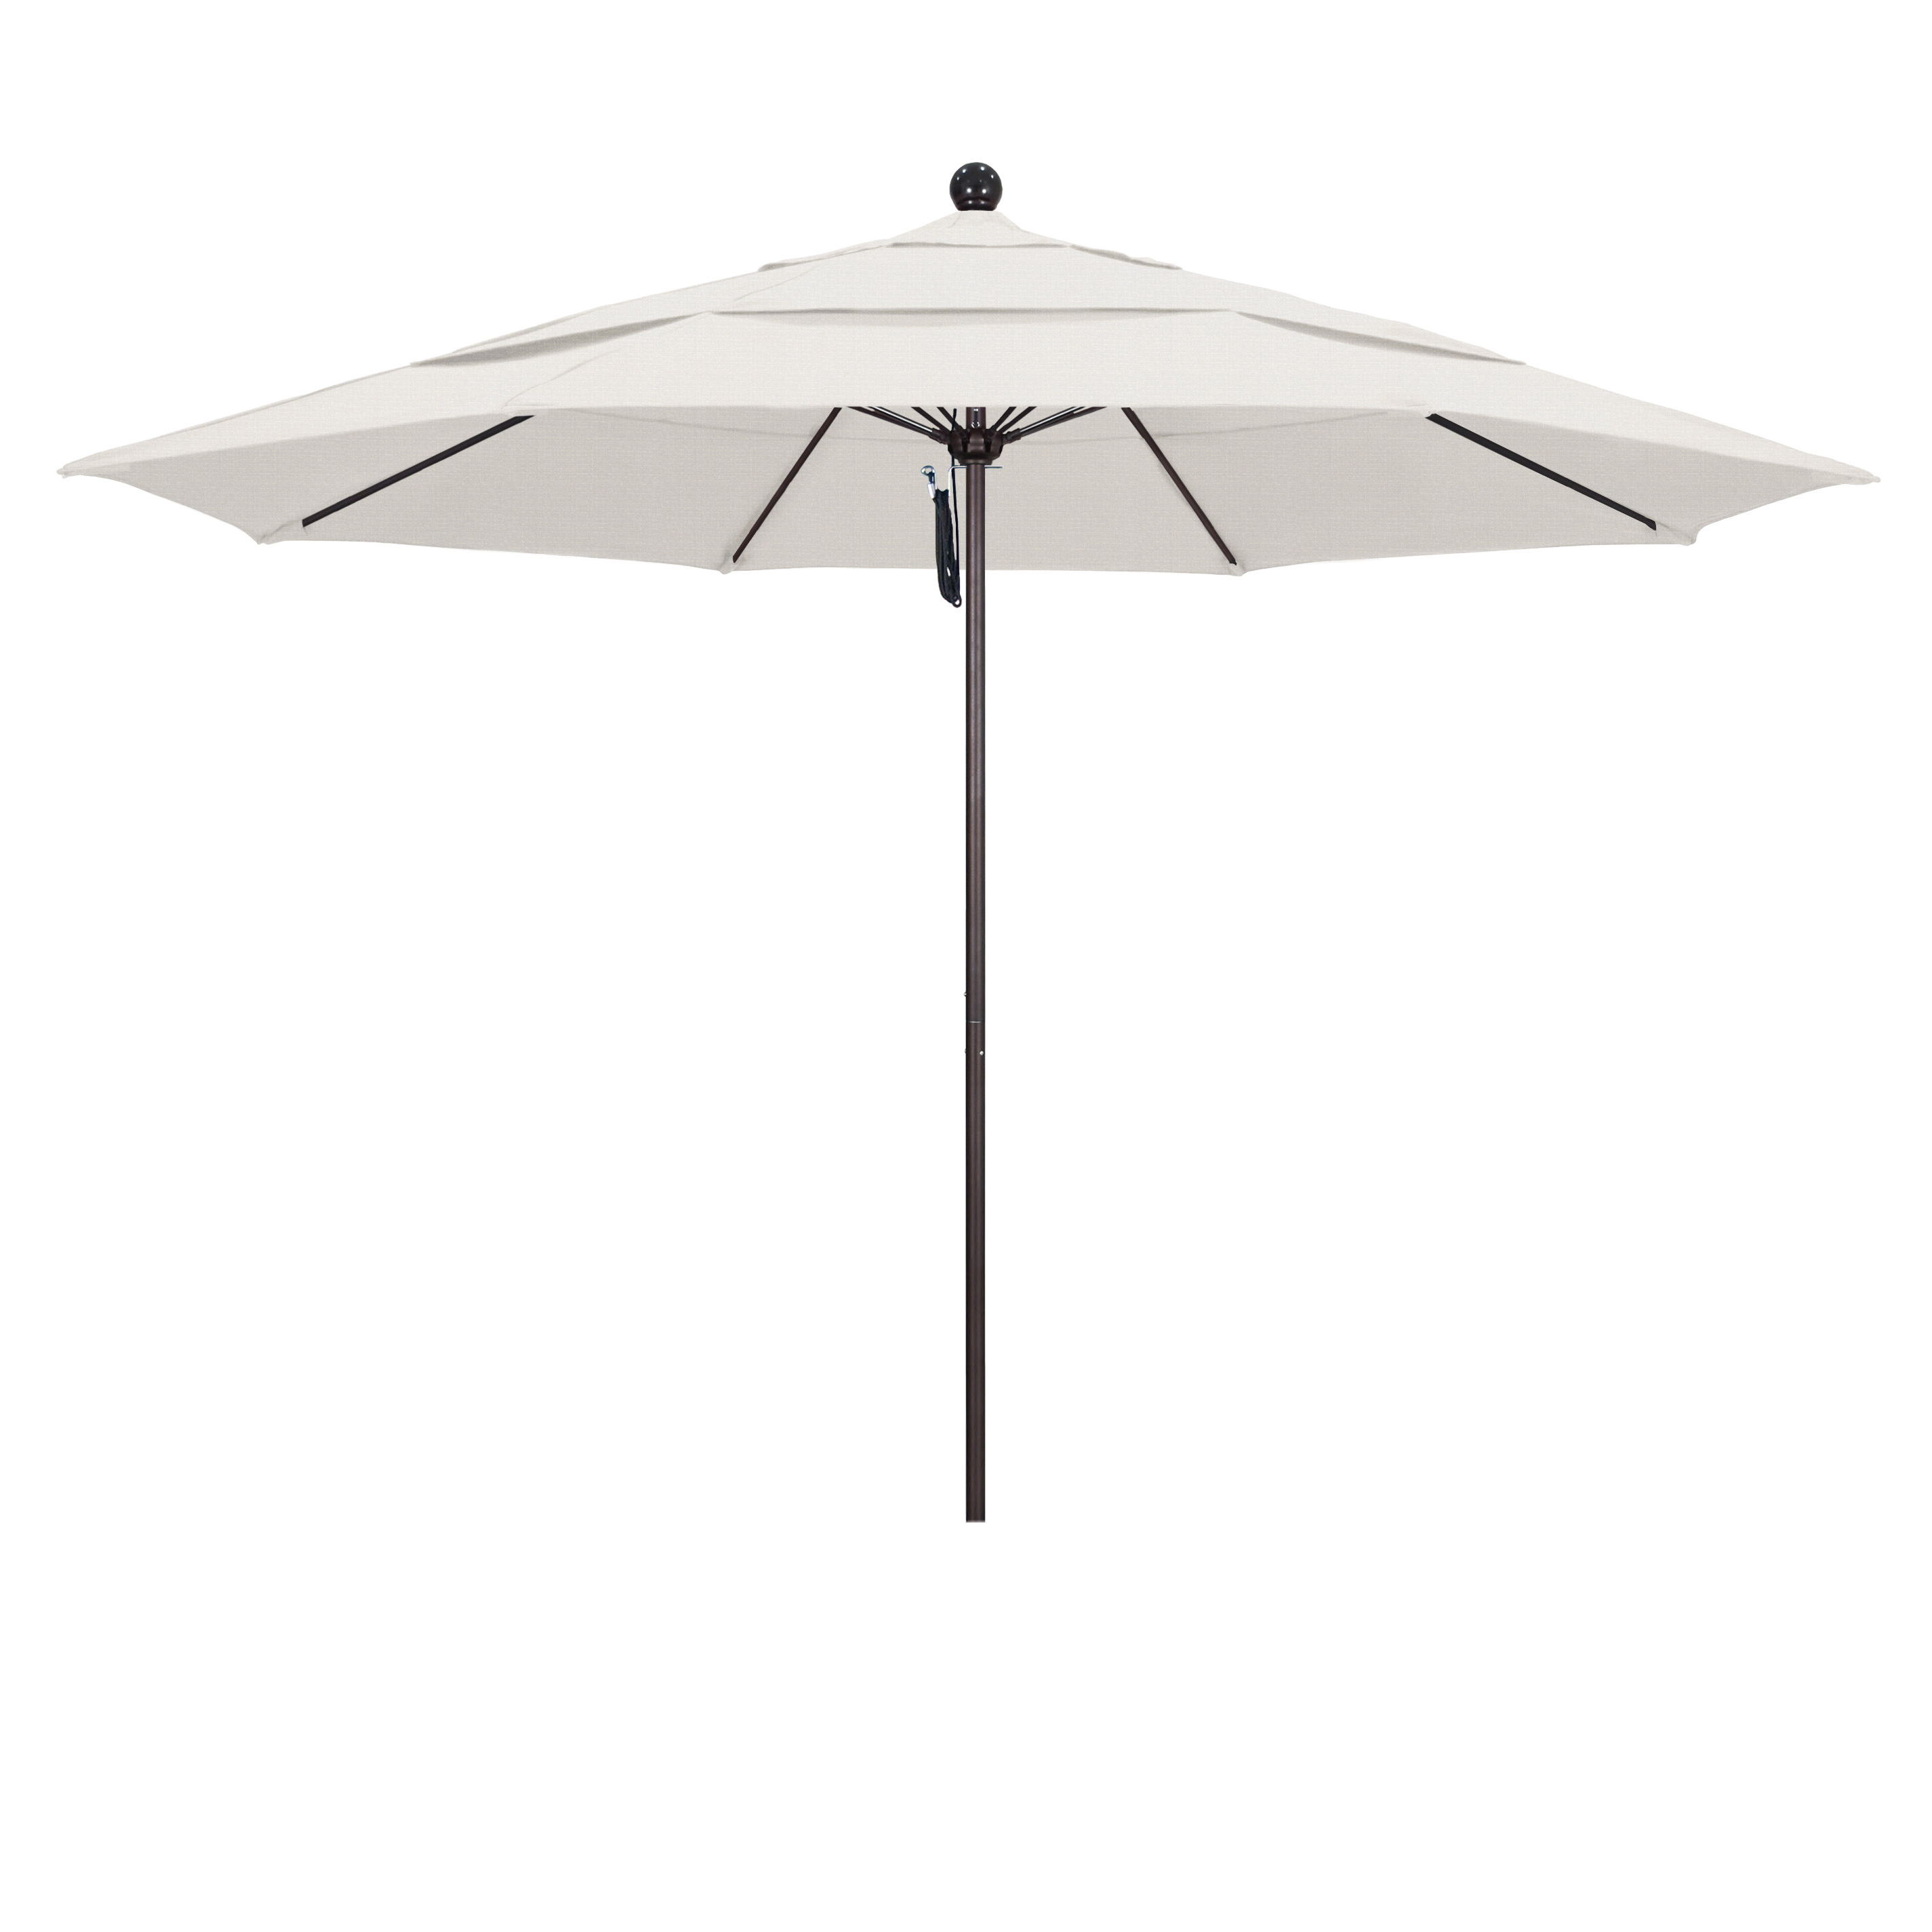 Widely Used Davenport 11' Market Umbrella With Mullaney Market Umbrellas (View 12 of 20)